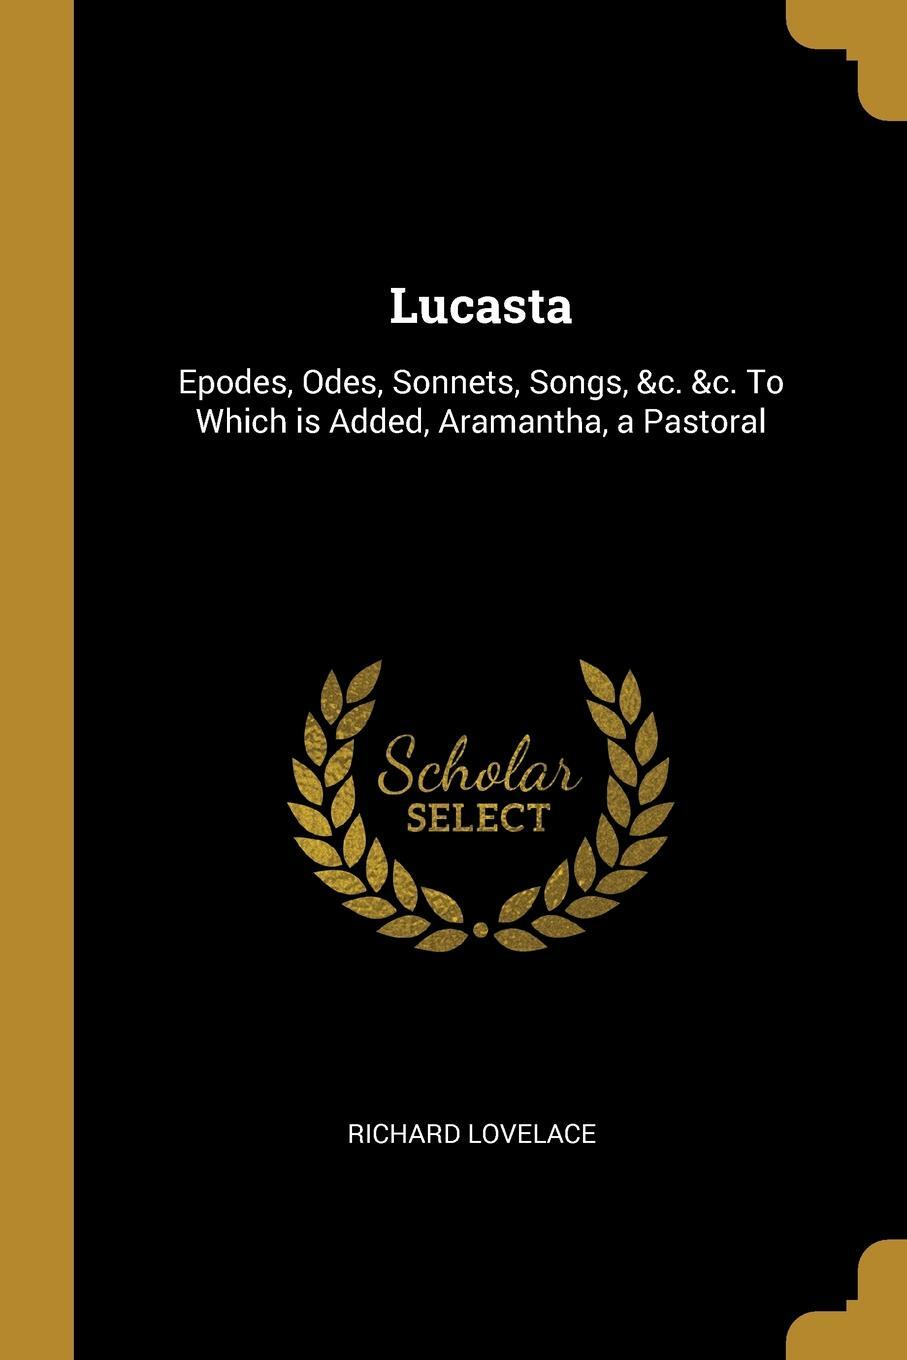 Lucasta. Epodes, Odes, Sonnets, Songs, &c. &c. To Which is Added, Aramantha, a Pastoral